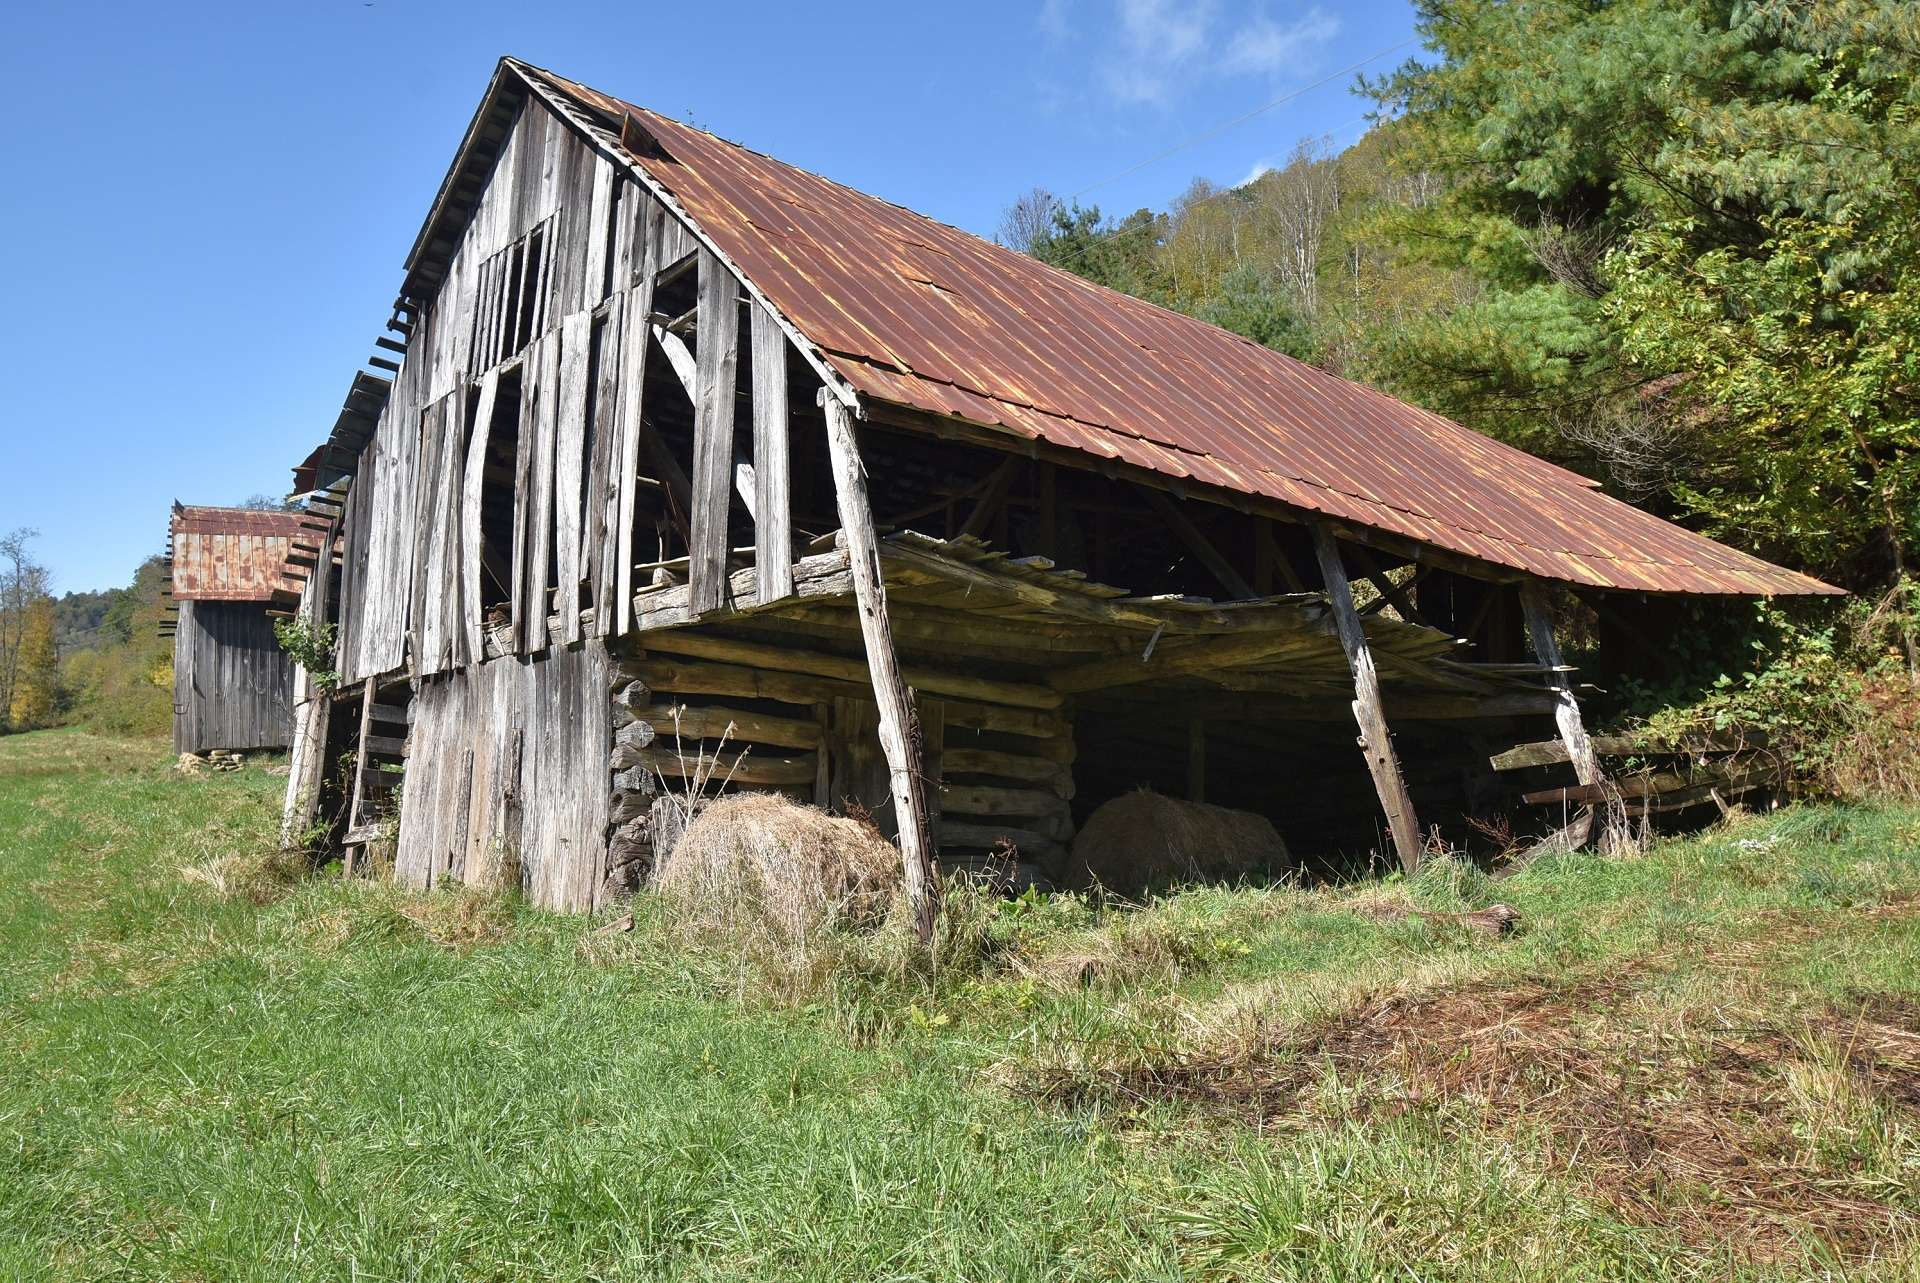 This farmstead barn shows off its vintage log beginnings.